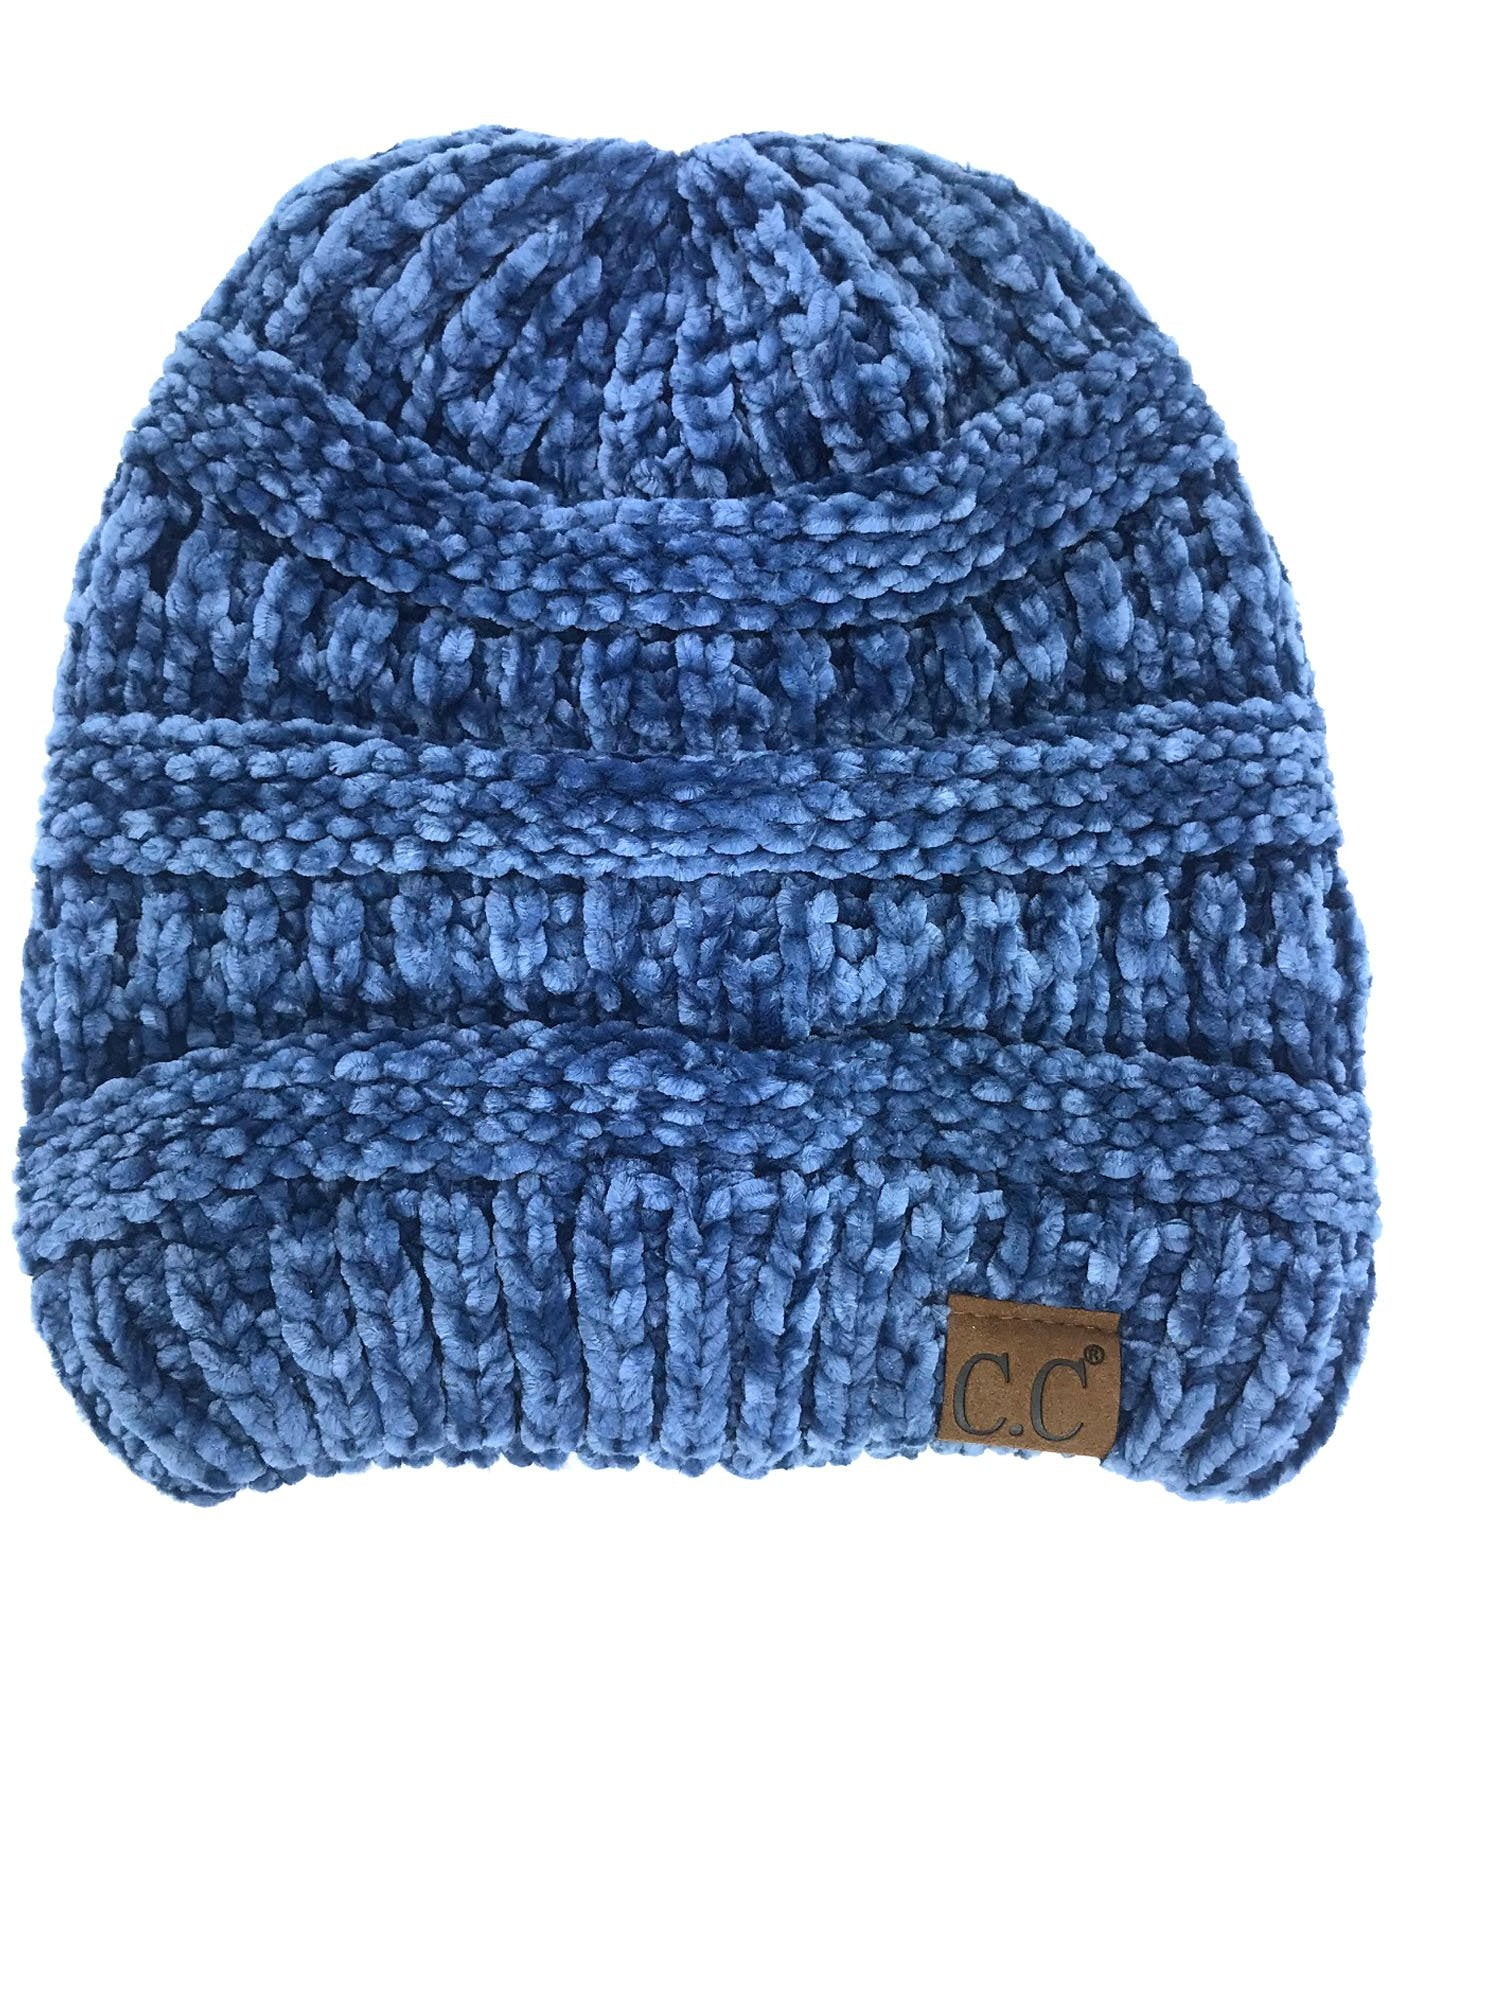 Hat-30 DARK DENIM VELOUR BEANIE